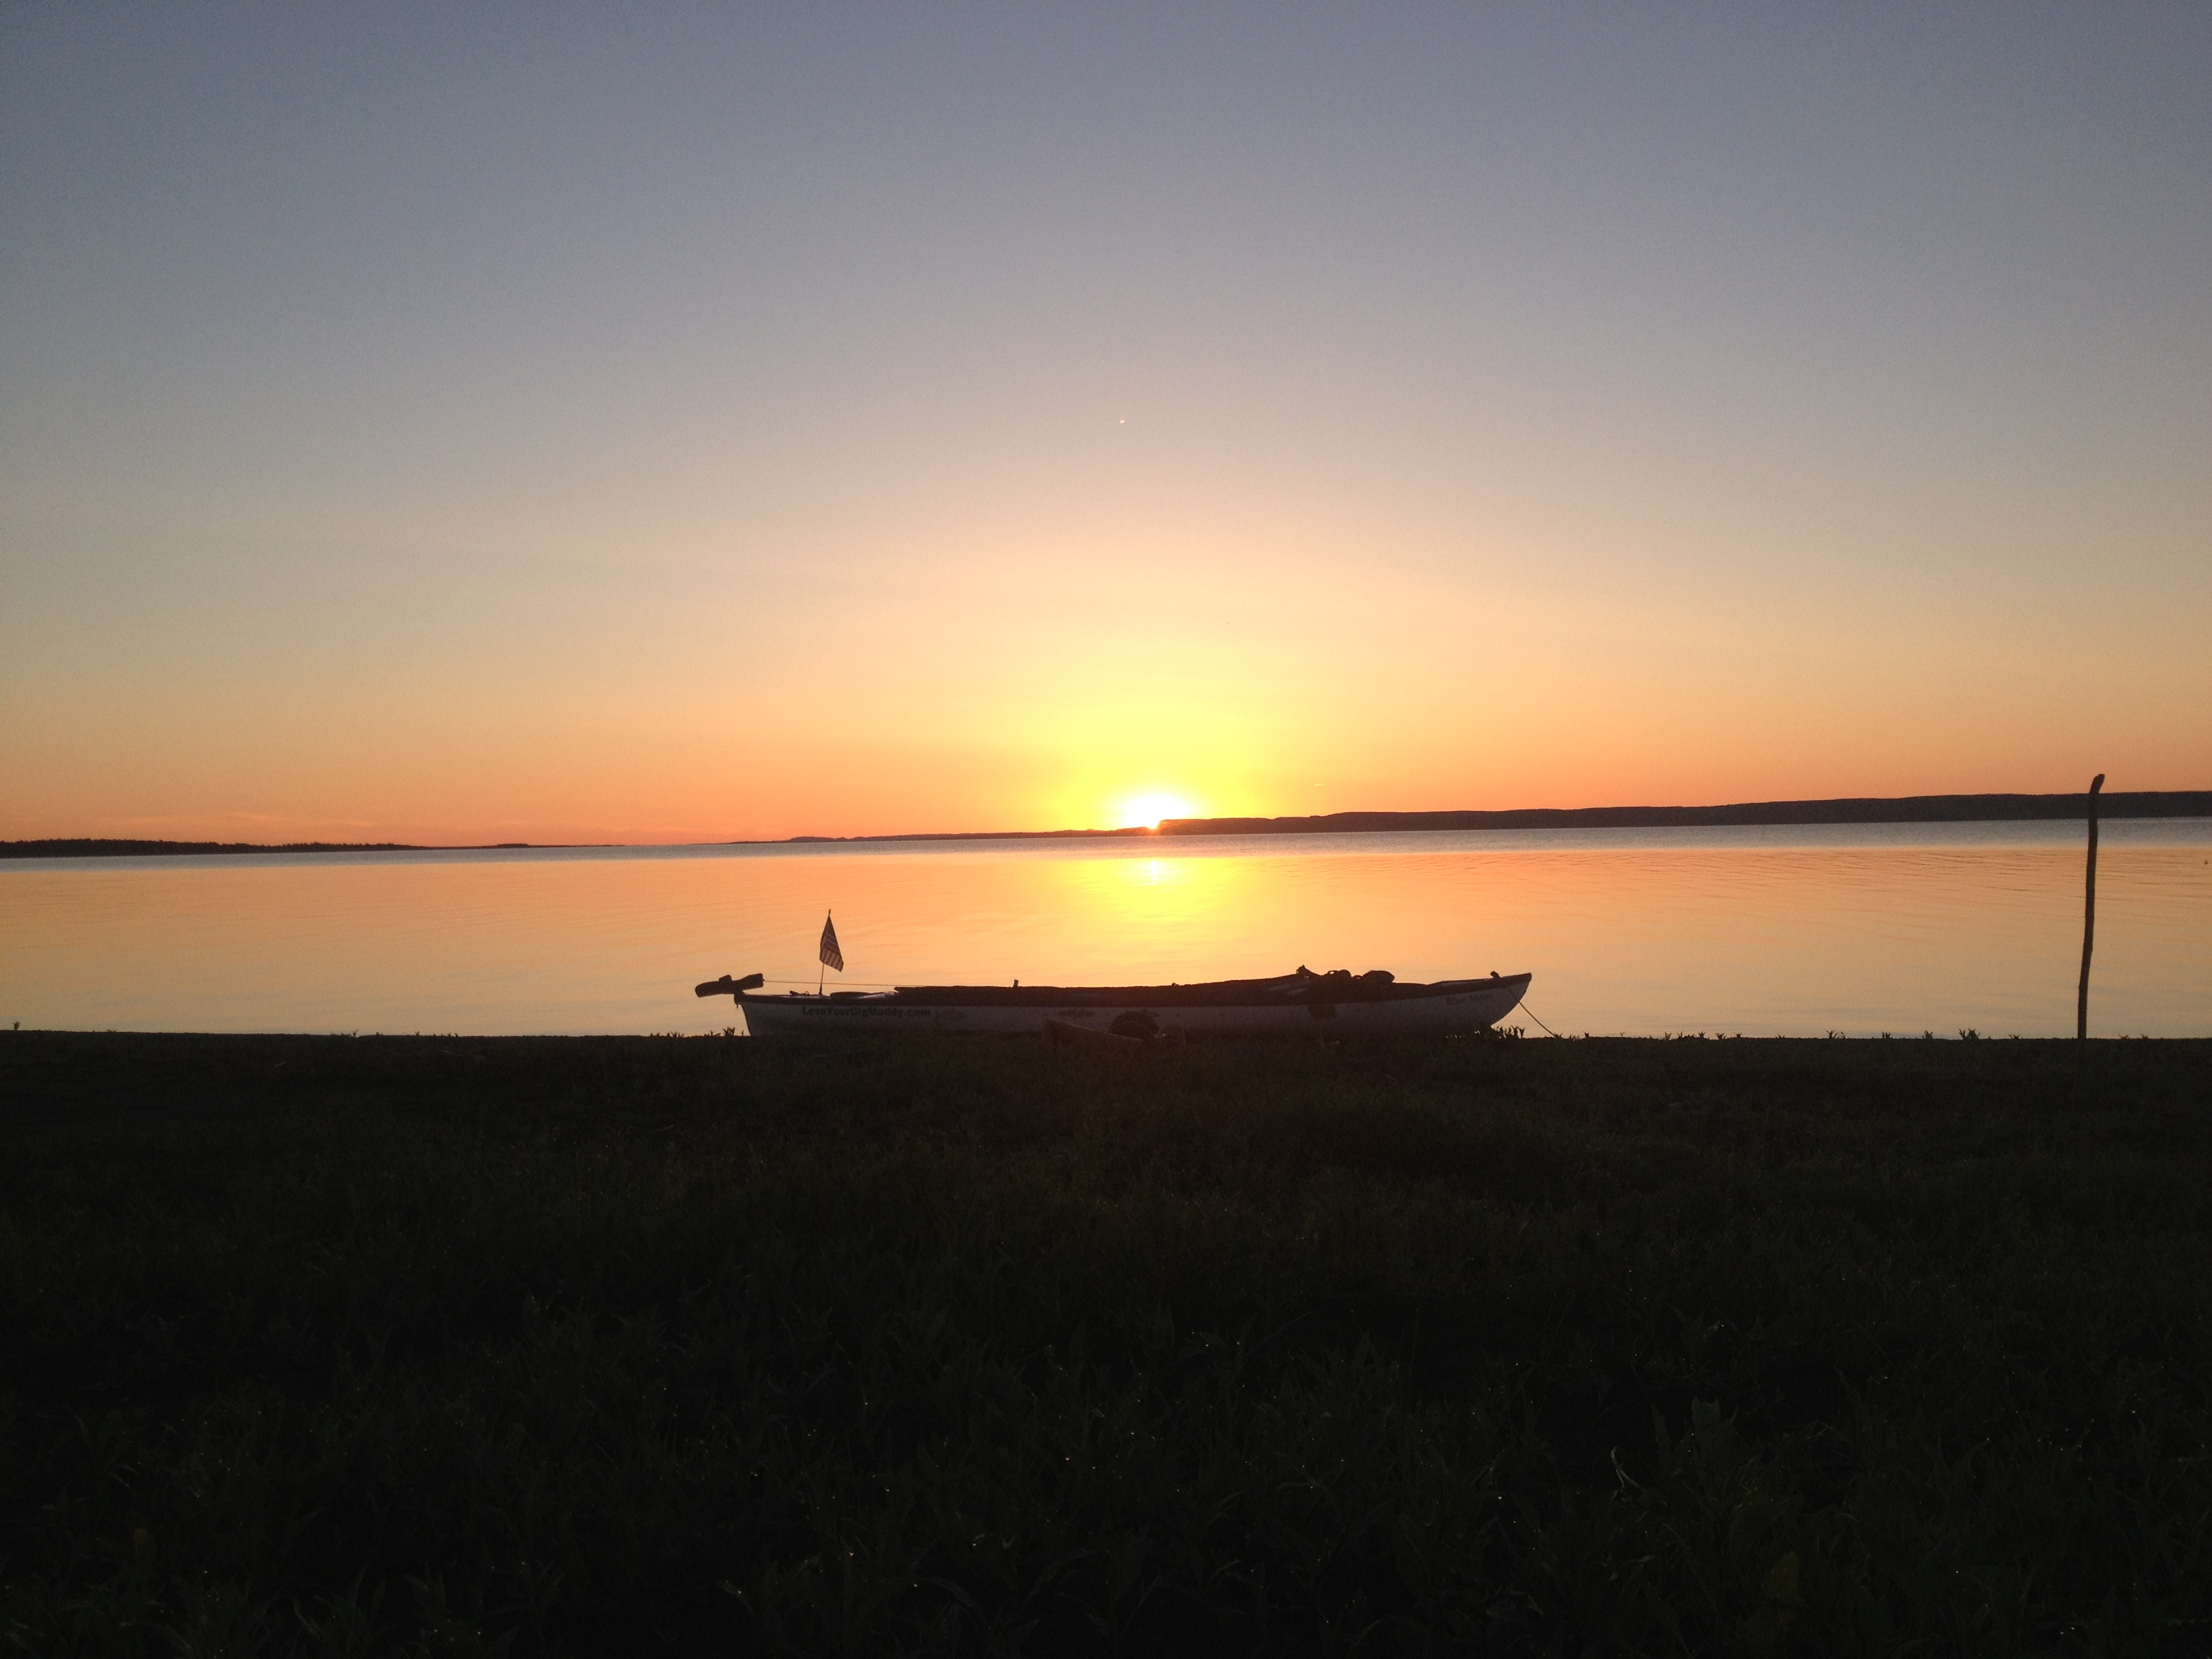 So long, Fort Peck Lake. It has been a pleasure.